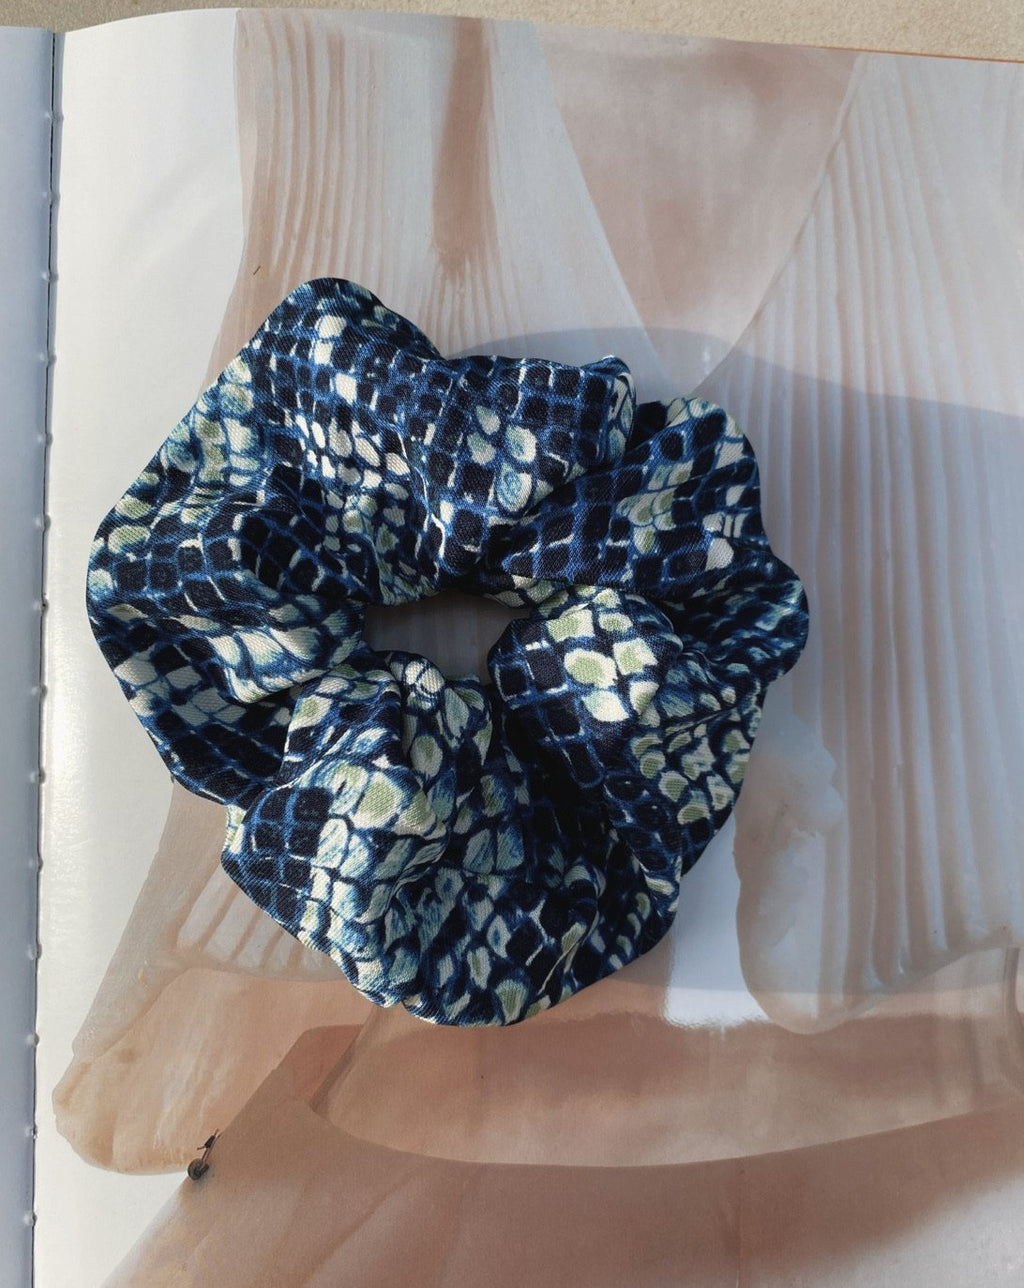 Blue Snakeskin Scrunchie freeshipping - Evangeline